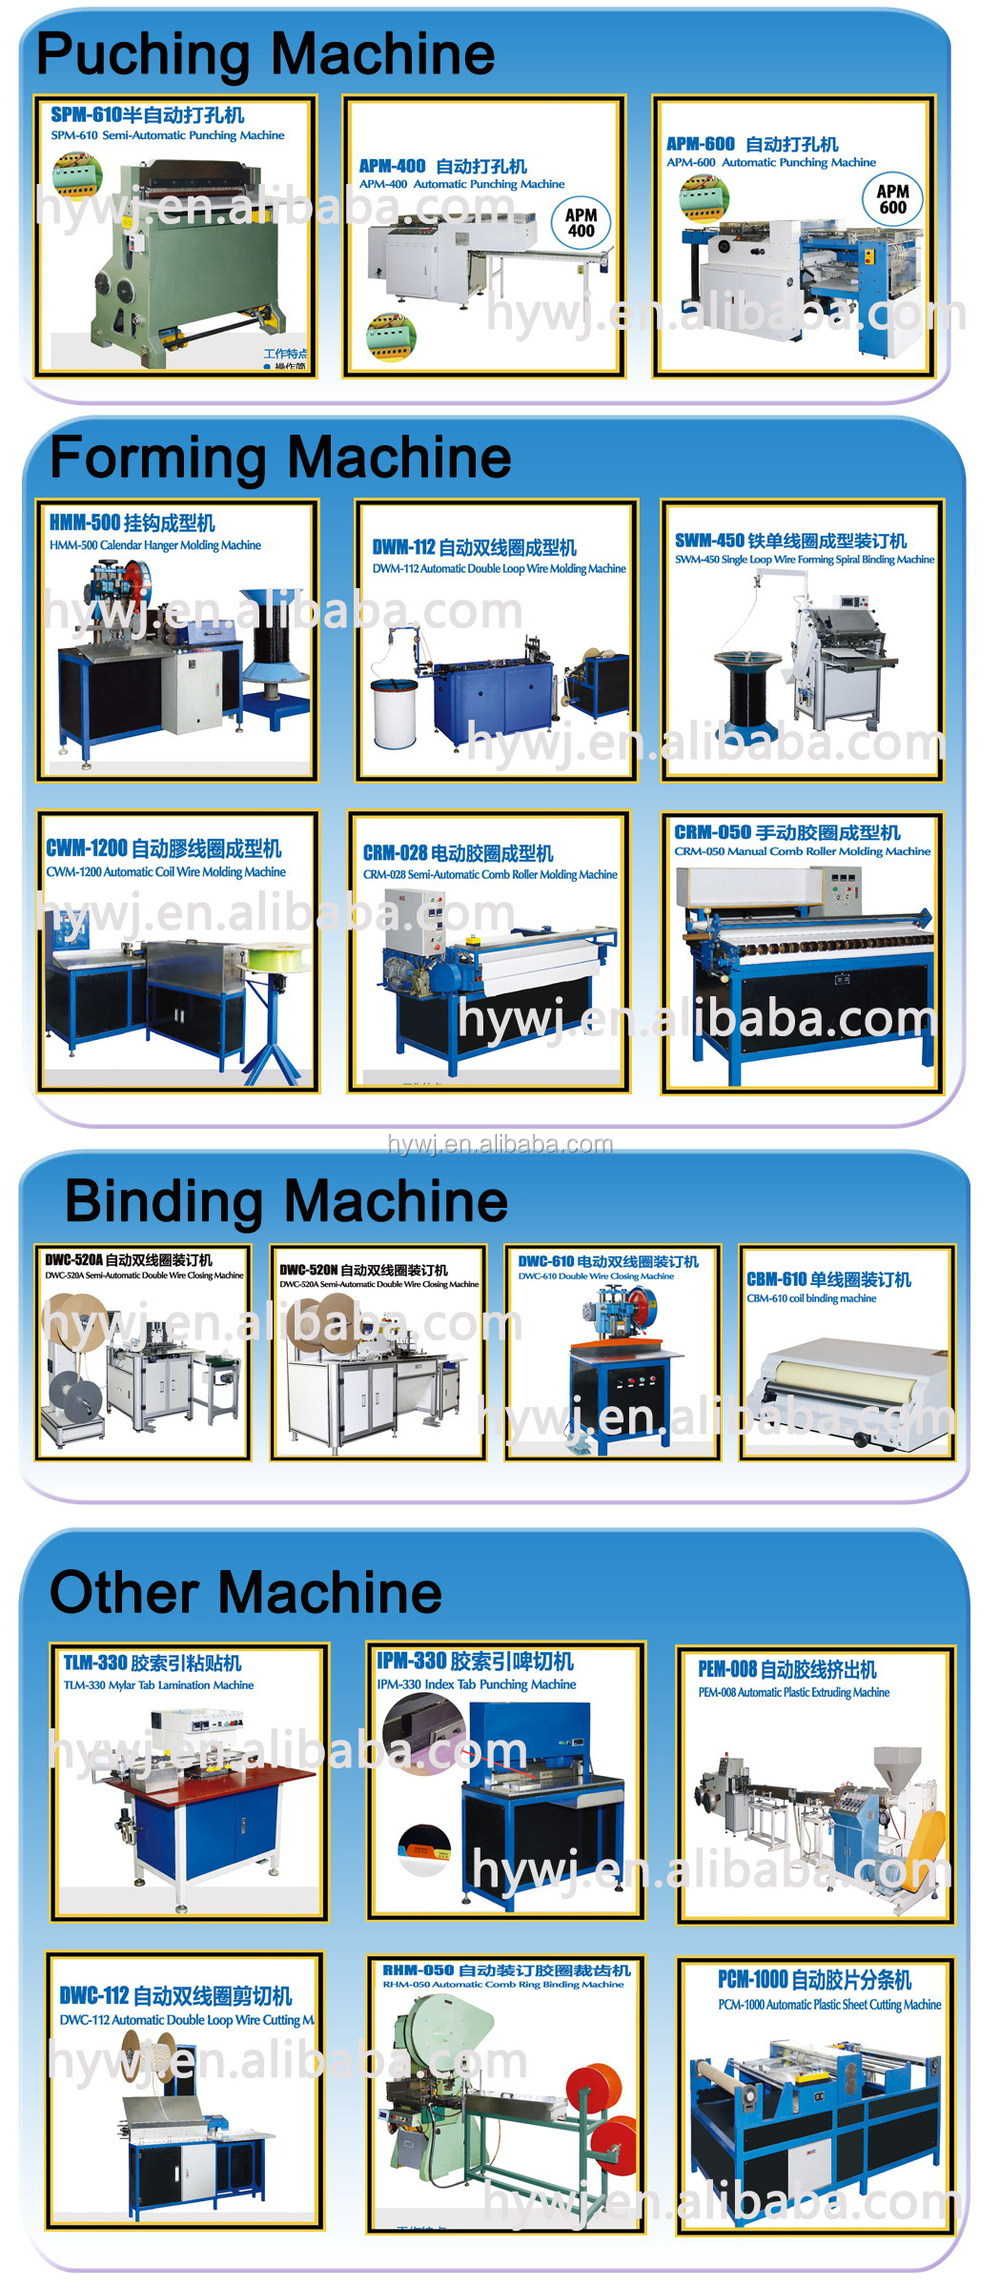 HMM-600 producting hanger size from 70mm to 600mm Automatic calendar hanger molding machine for factory